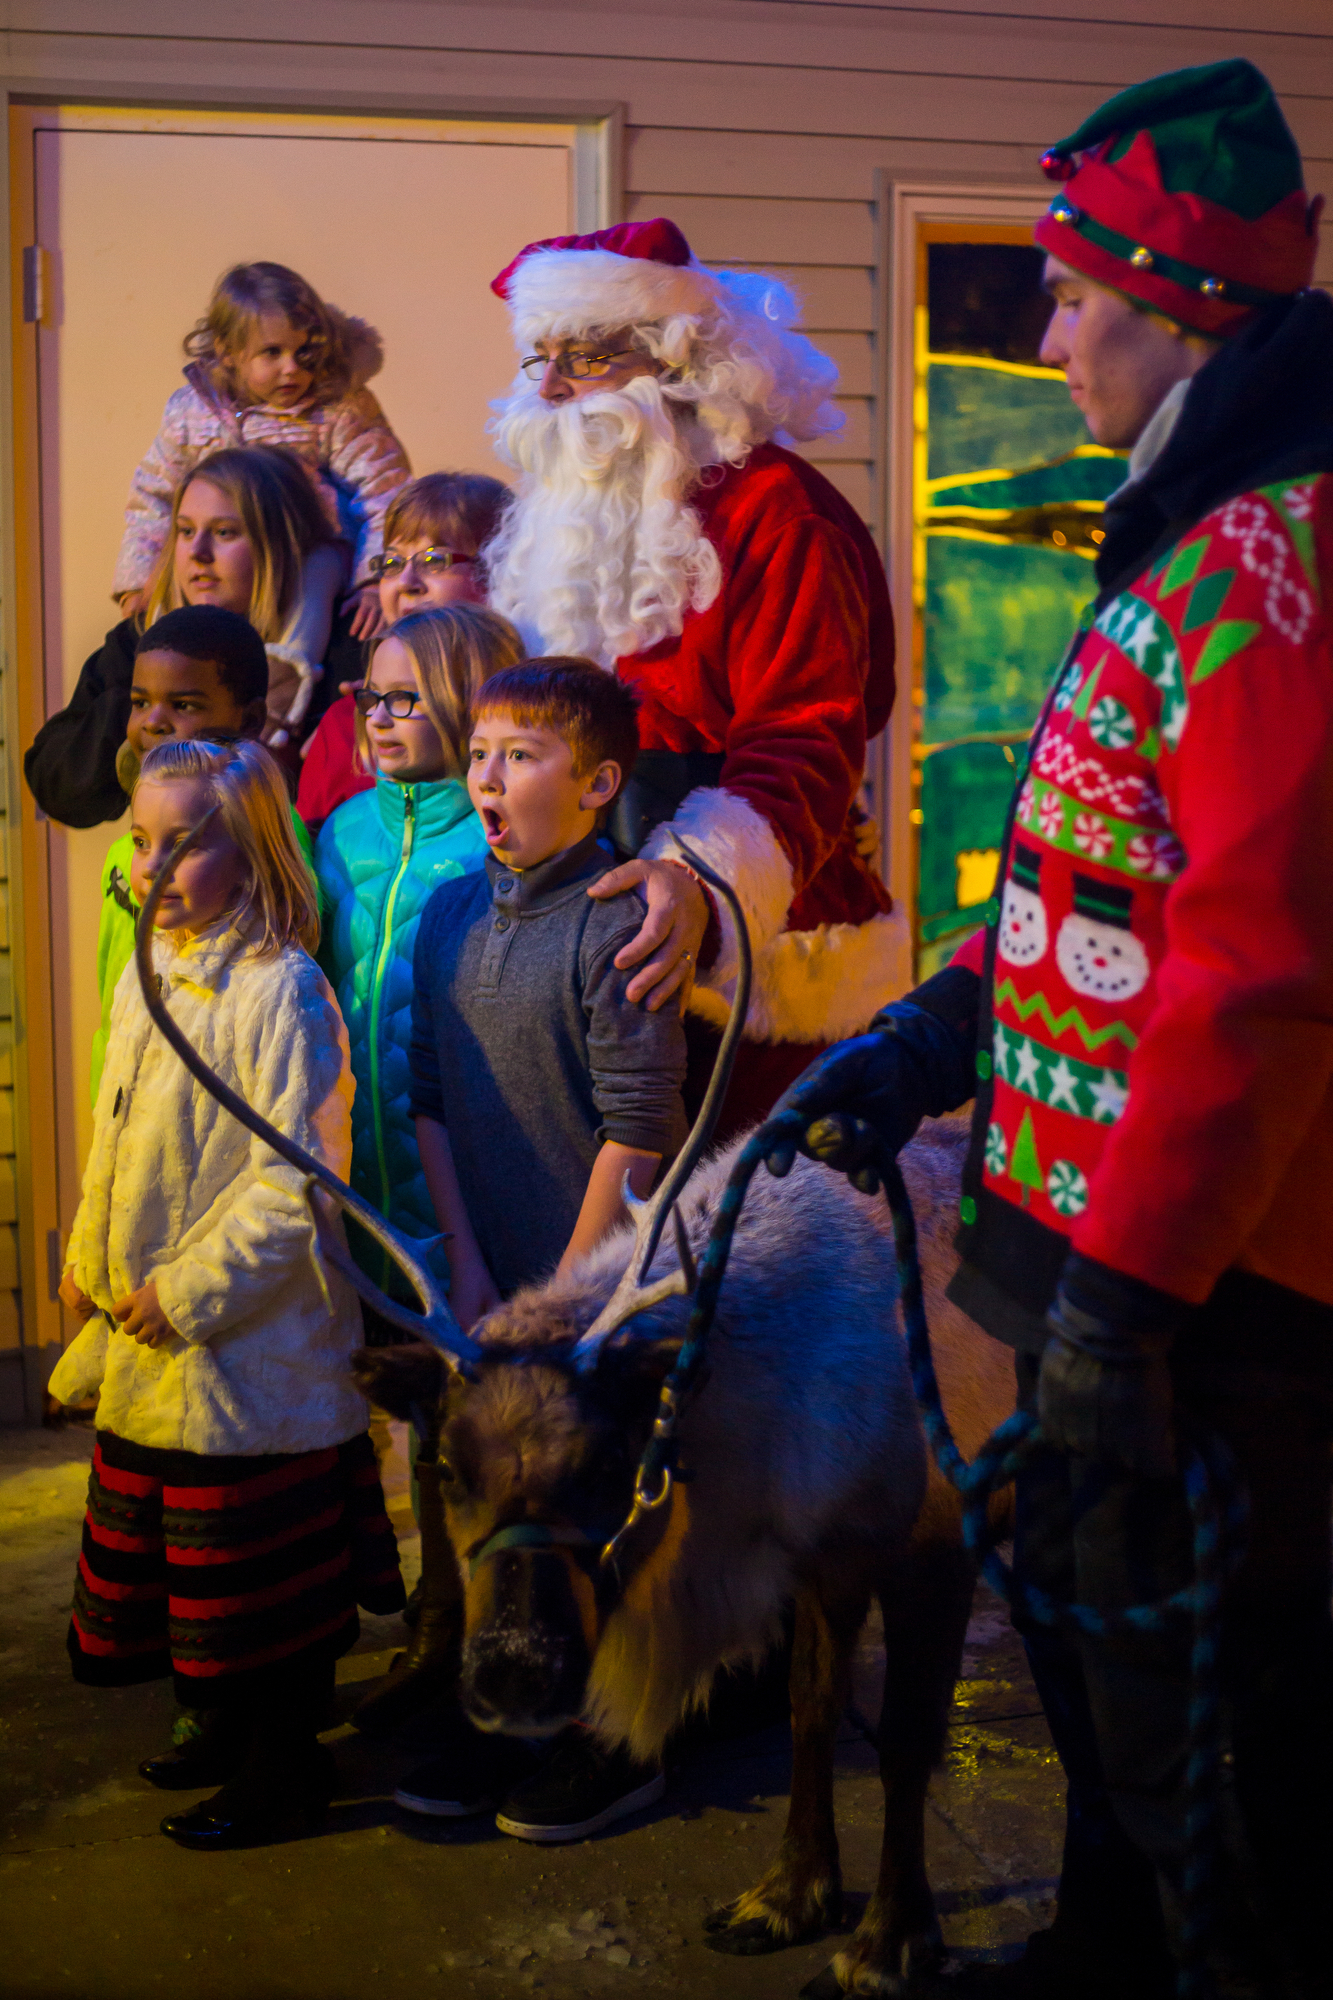 People take a photograph with Clarice, a four-year-old reindeer, at Faith Assemble Church in Belleville on Sunday, December 18, 2016. Carousel Acres has four reindeer that they take to various events and parties around Washtenaw County. Matt Weigand | The Ann Arbor News